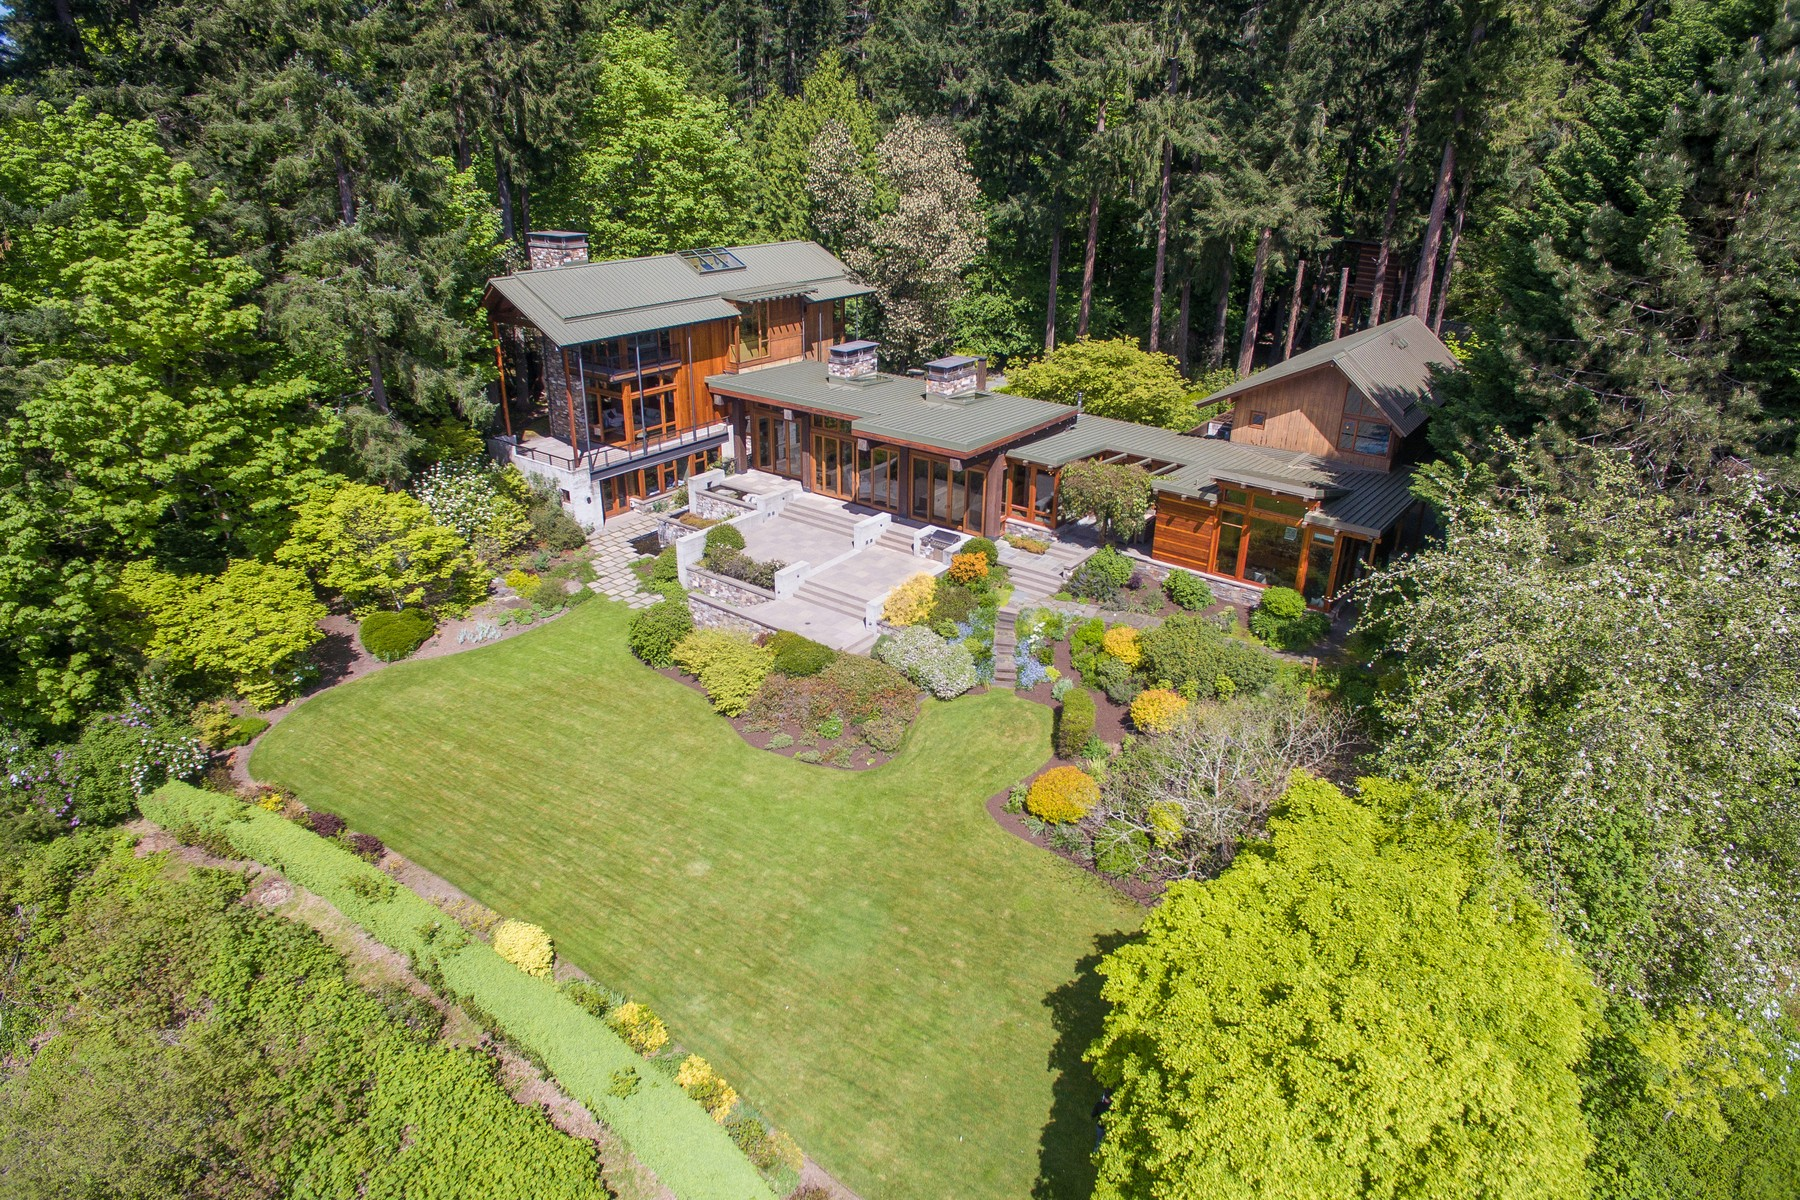 Casa Unifamiliar por un Venta en Picturesque waterfront estate 8888 Res5/3 Undisclosed Bainbridge Island, Washington 98110 Estados Unidos